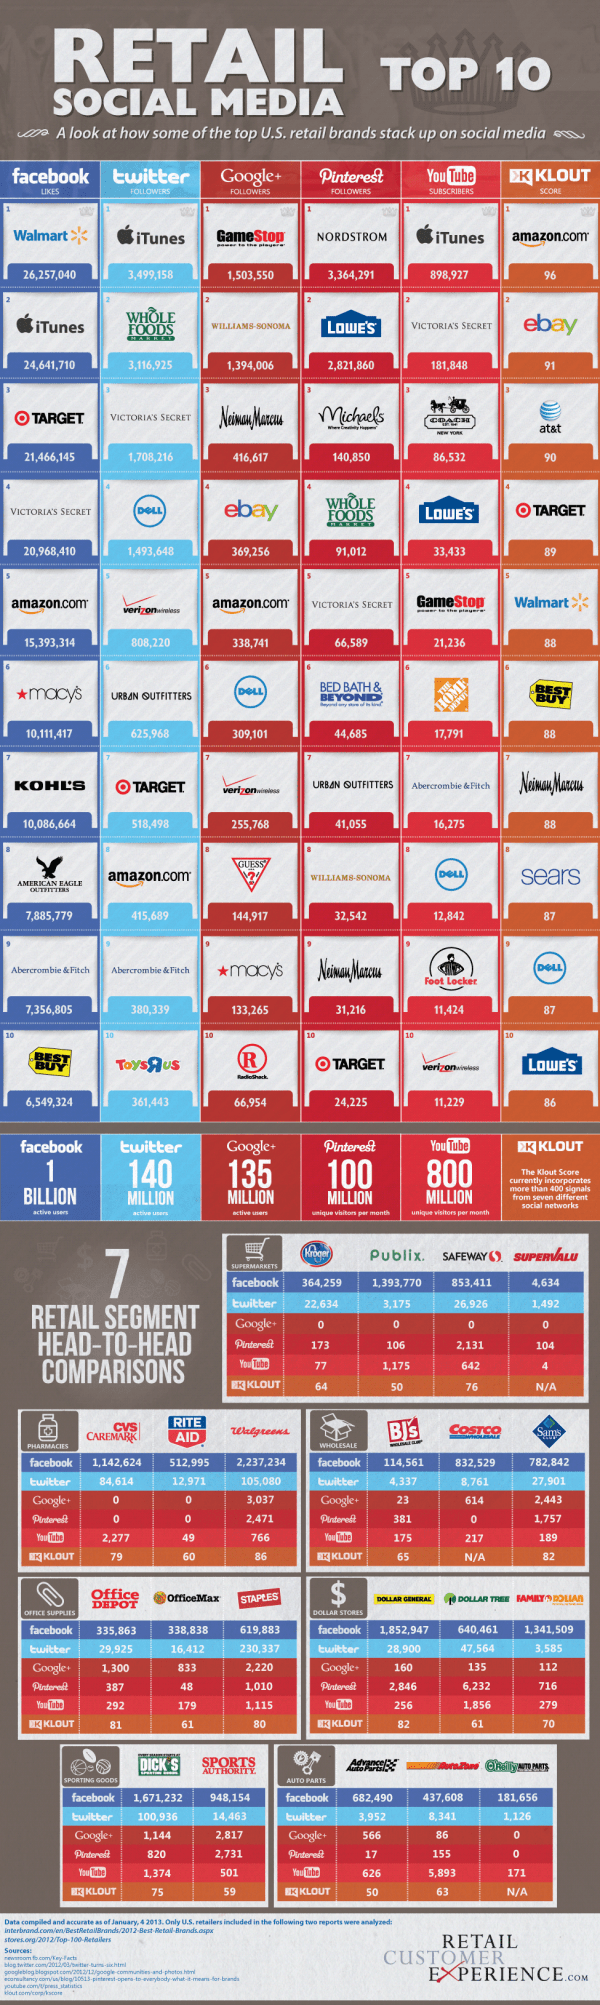 Retail Social Media Top 10 [Infographic]